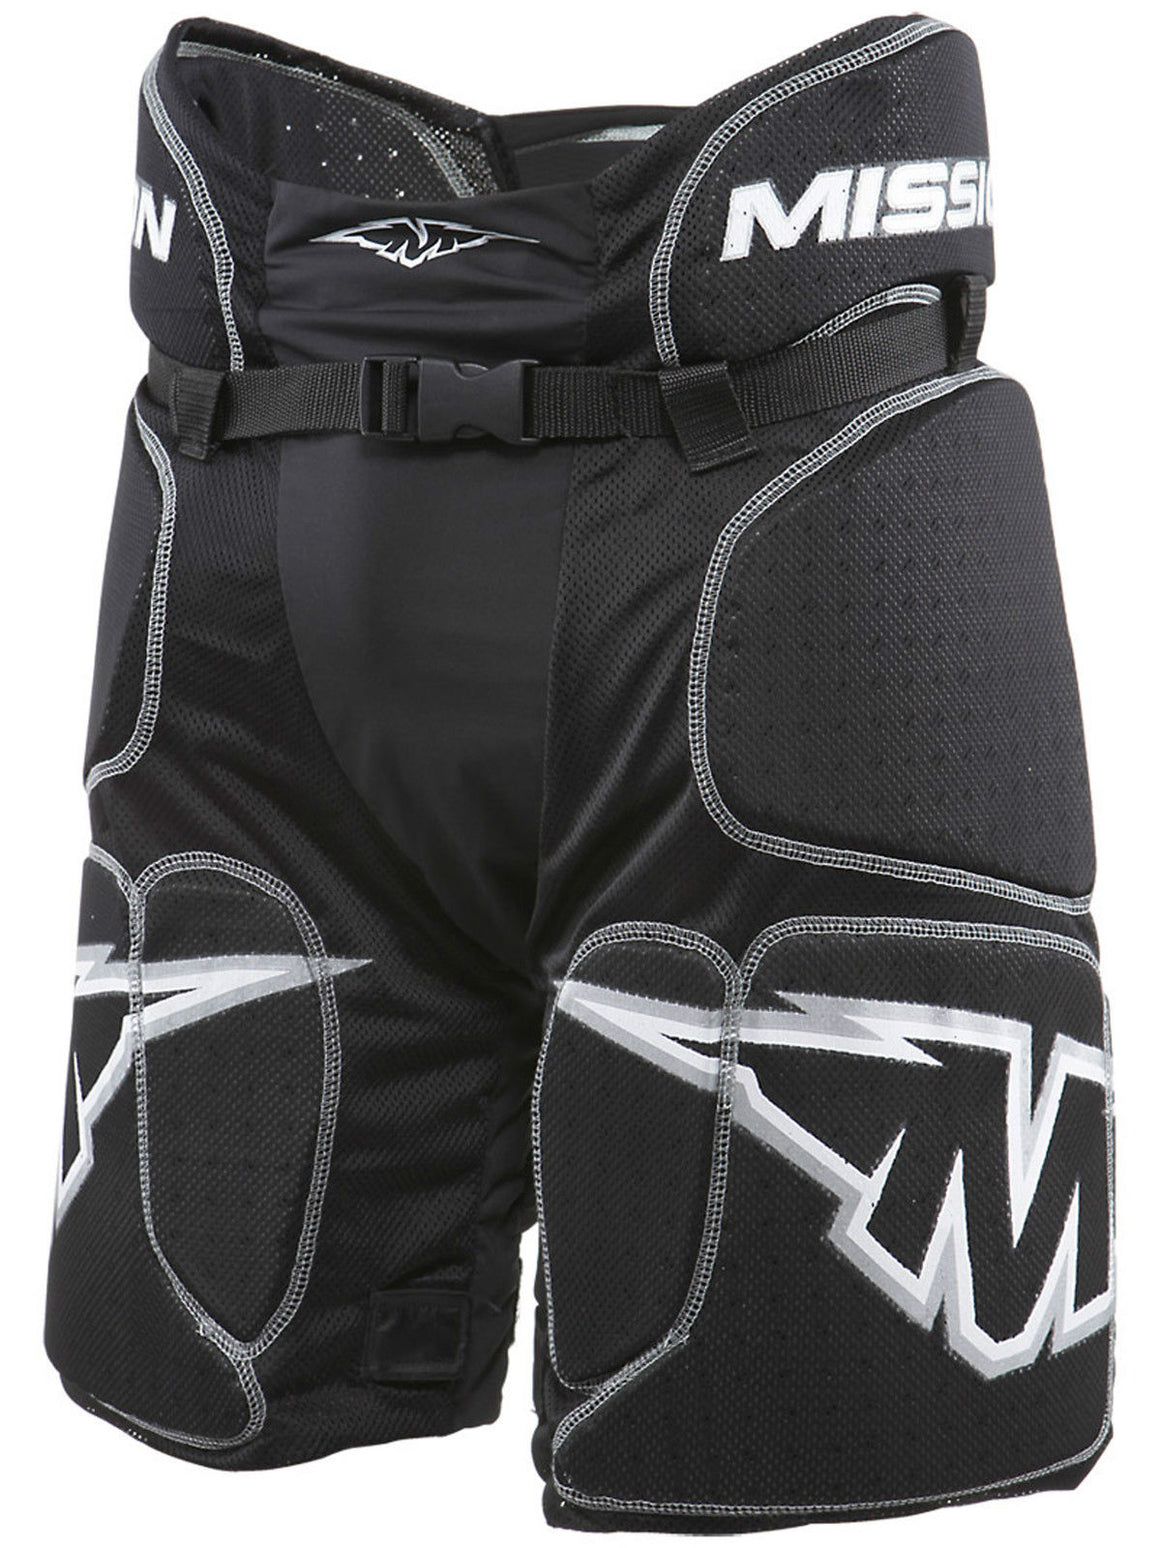 Mission Core Hockey Girdle